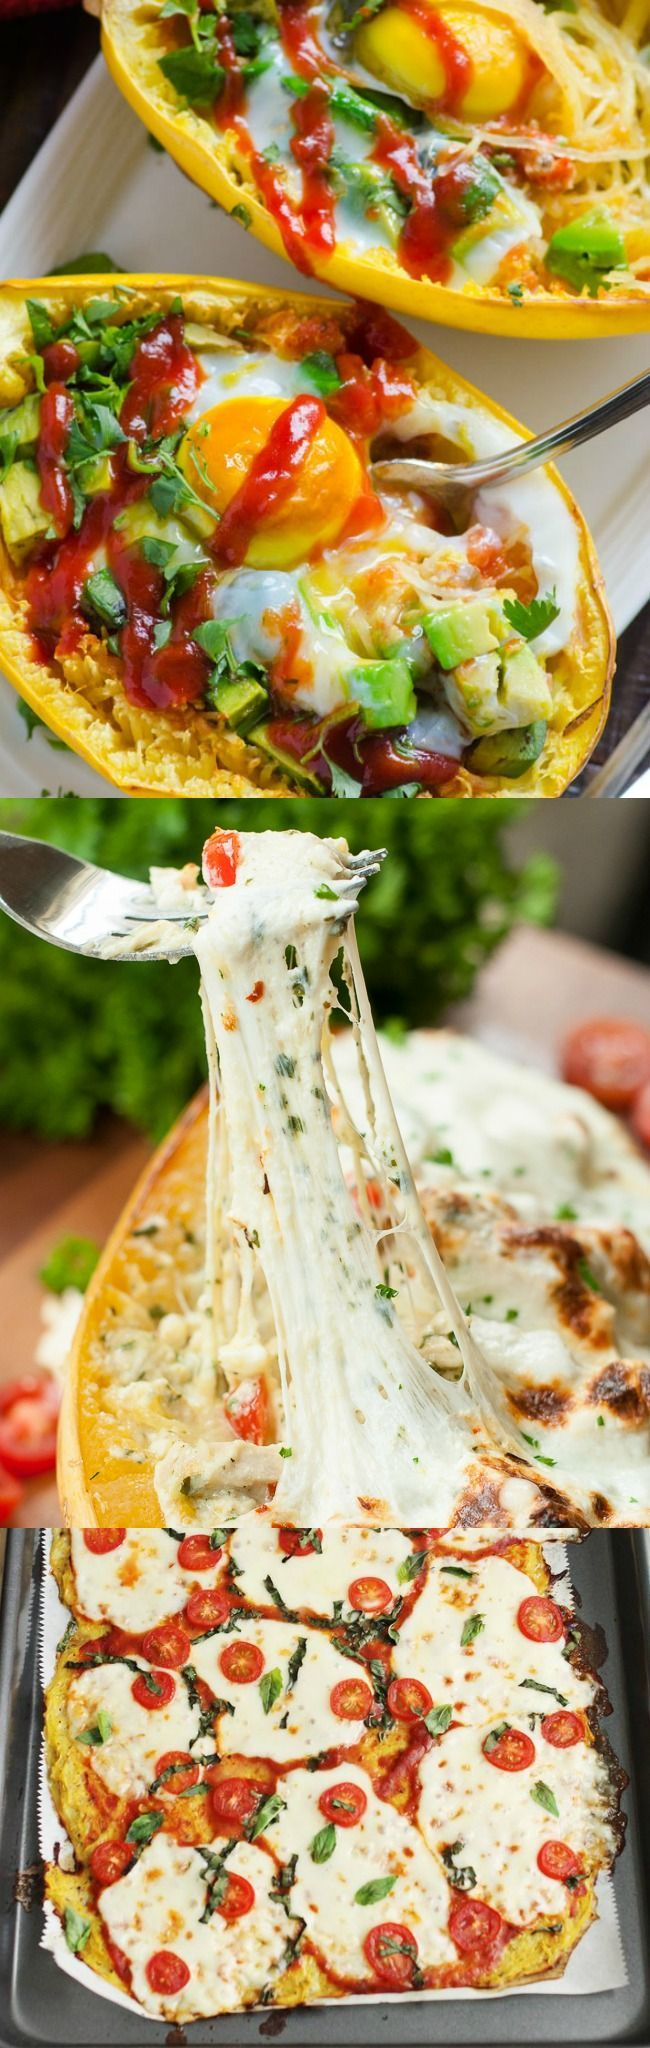 10 slimming yet satisfying spaghetti squash recipes -- LOVE these!